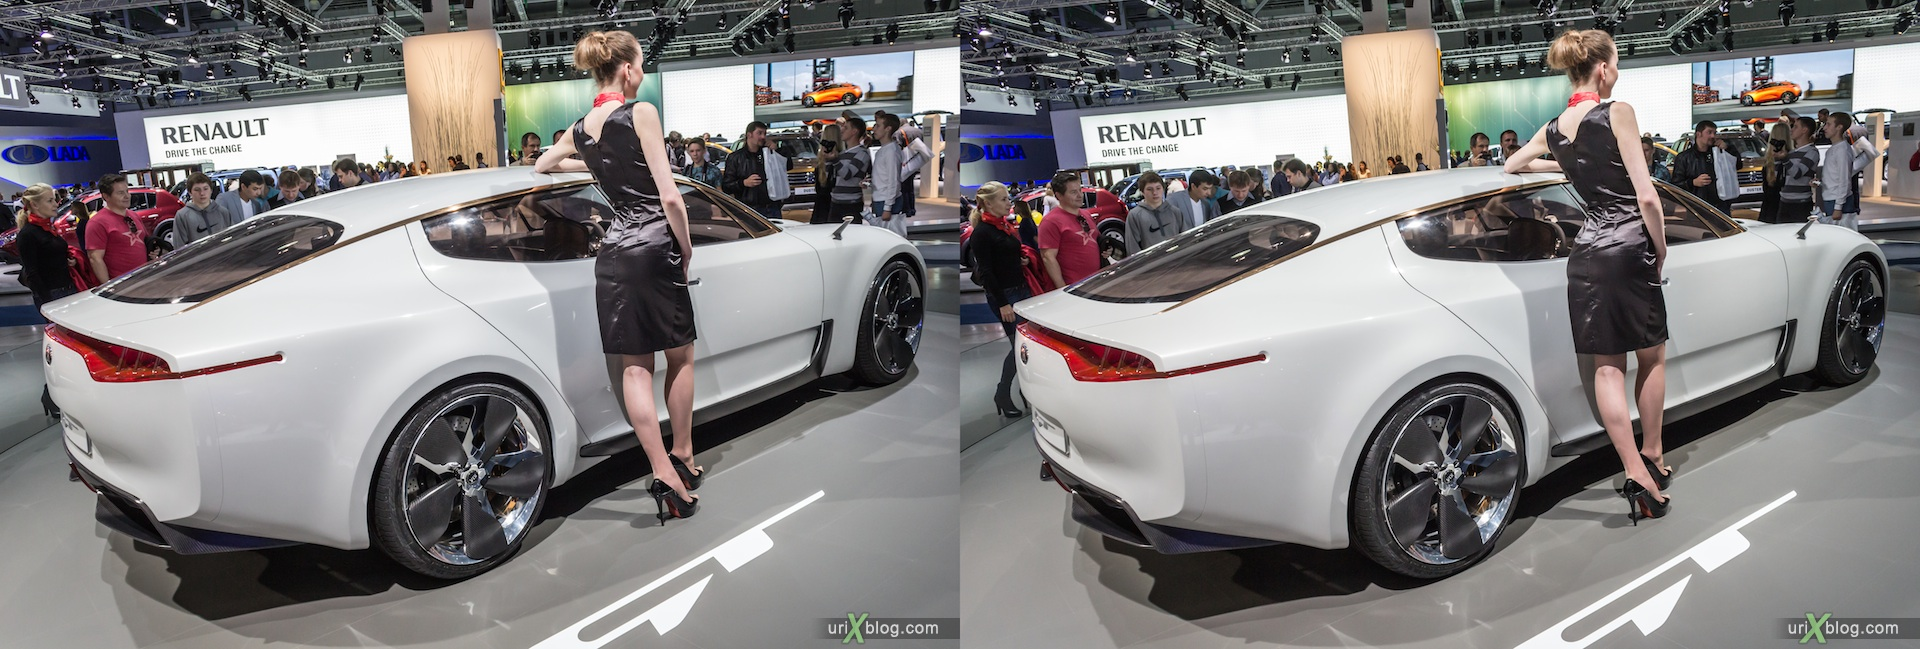 2012, KIA GT, girl, model, Moscow International Automobile Salon, auto show, 3D, stereo pair, cross-eyed, crossview